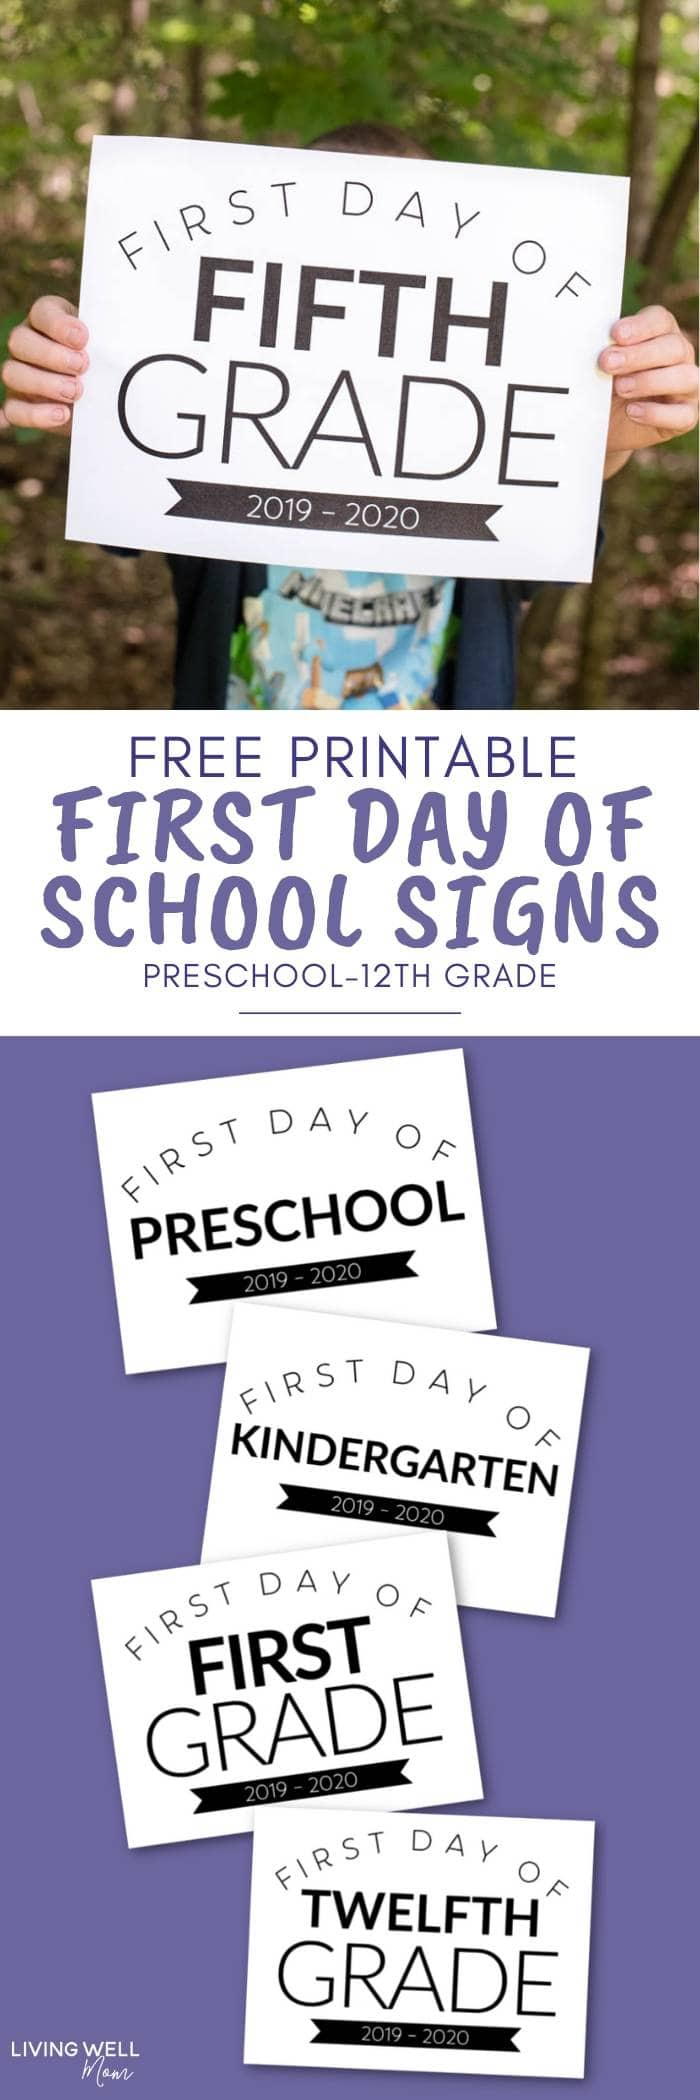 graphic about First Day of 1st Grade Printable named Absolutely free Printable 1st Working day of Faculty Signs and symptoms for All Grades